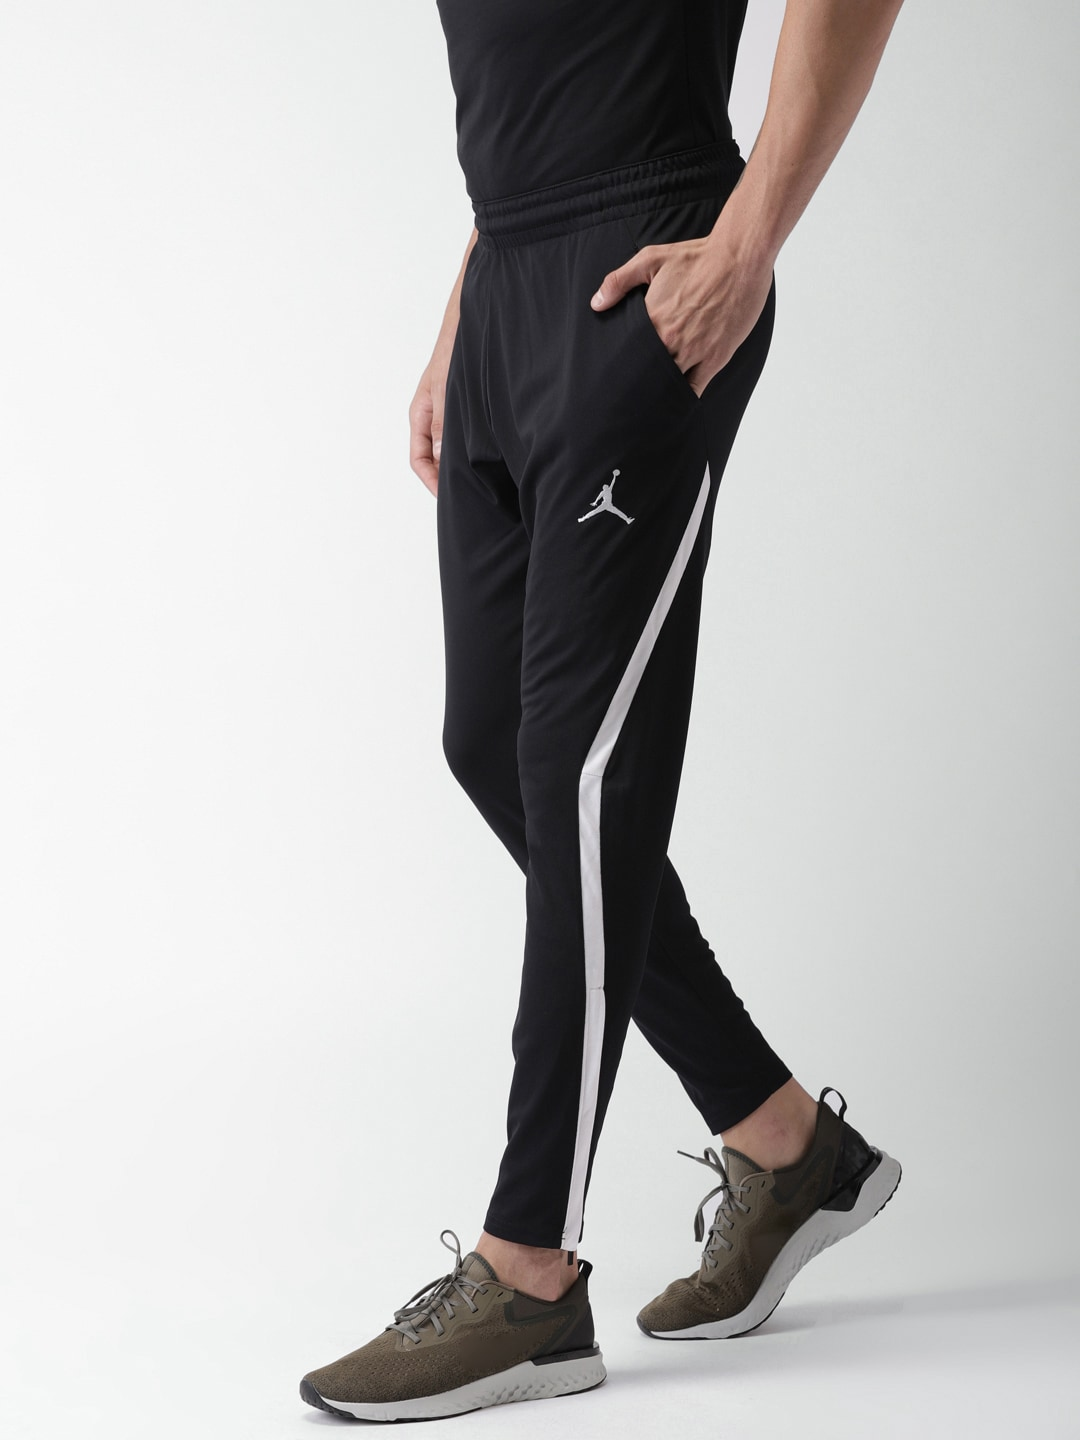 440bd7a0765 Nike Backpacks Tights Track Pants Pants - Buy Nike Backpacks Tights Track Pants  Pants online in India